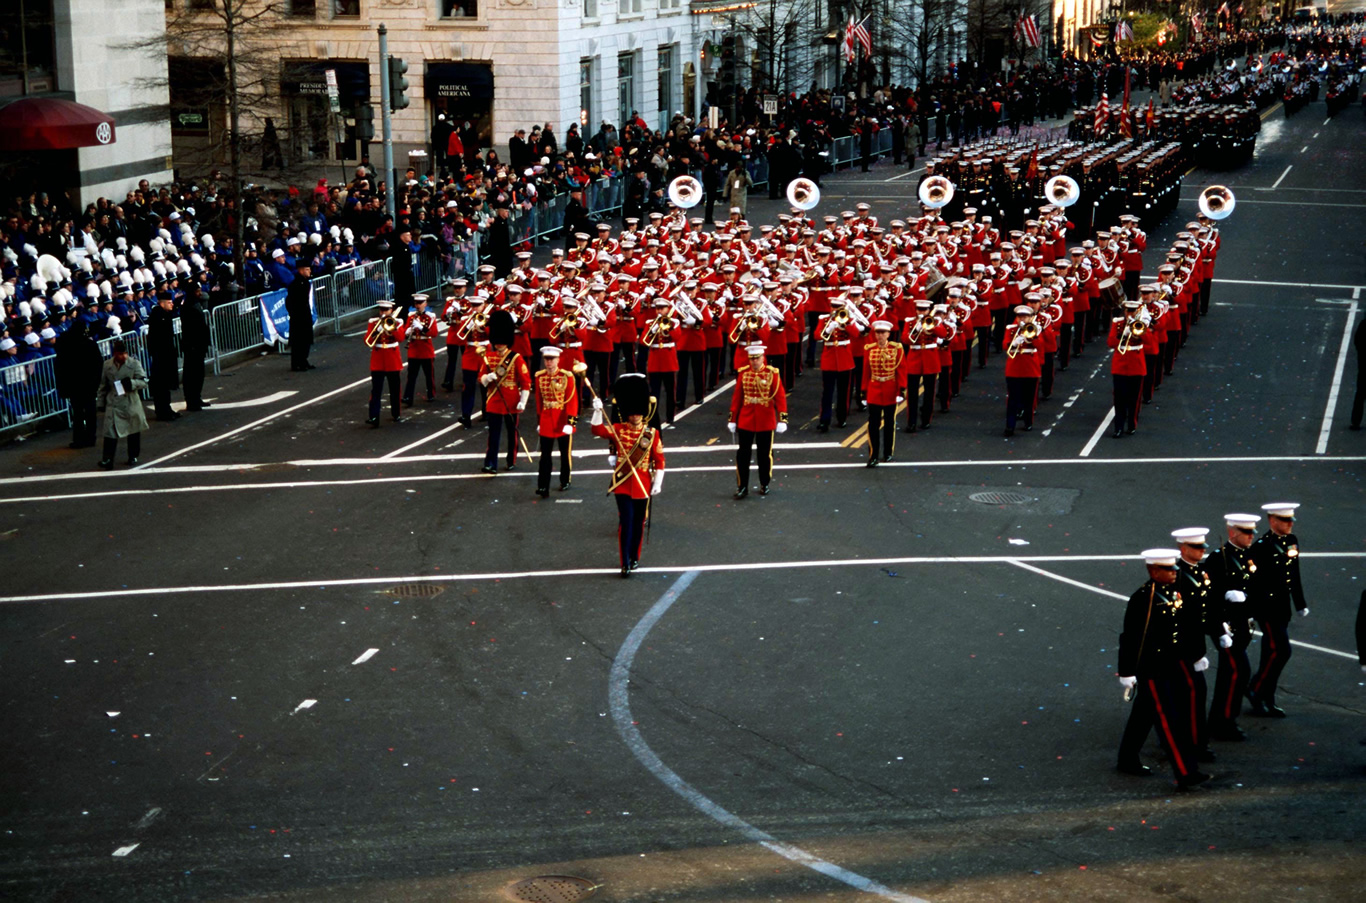 Are ceremonial parades important to you?